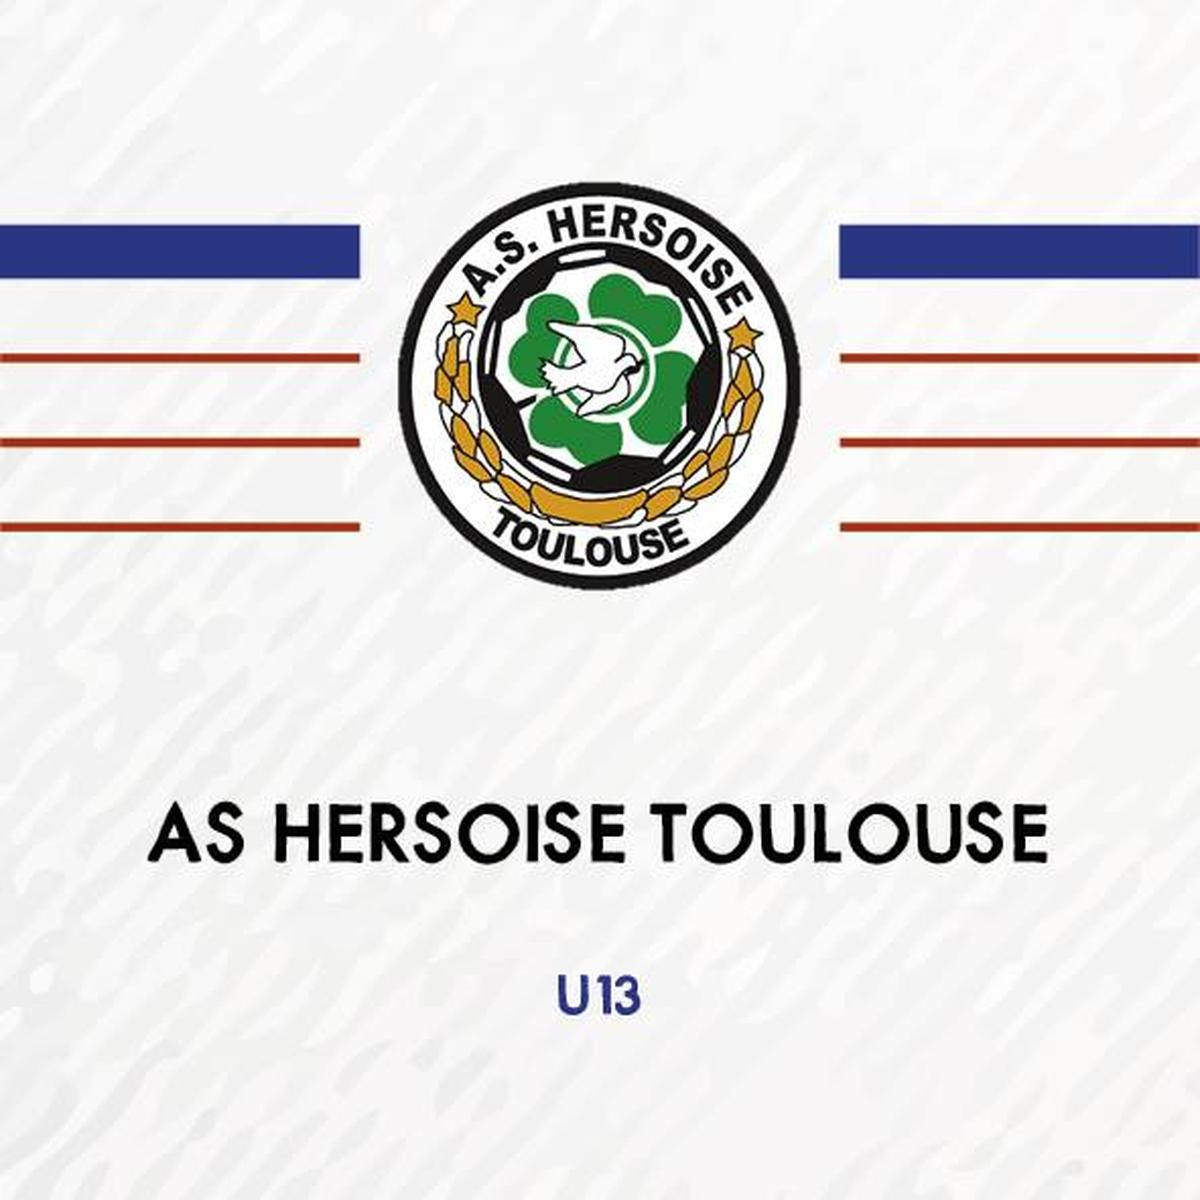 U13 - AS HERSOISE TOULOUSE